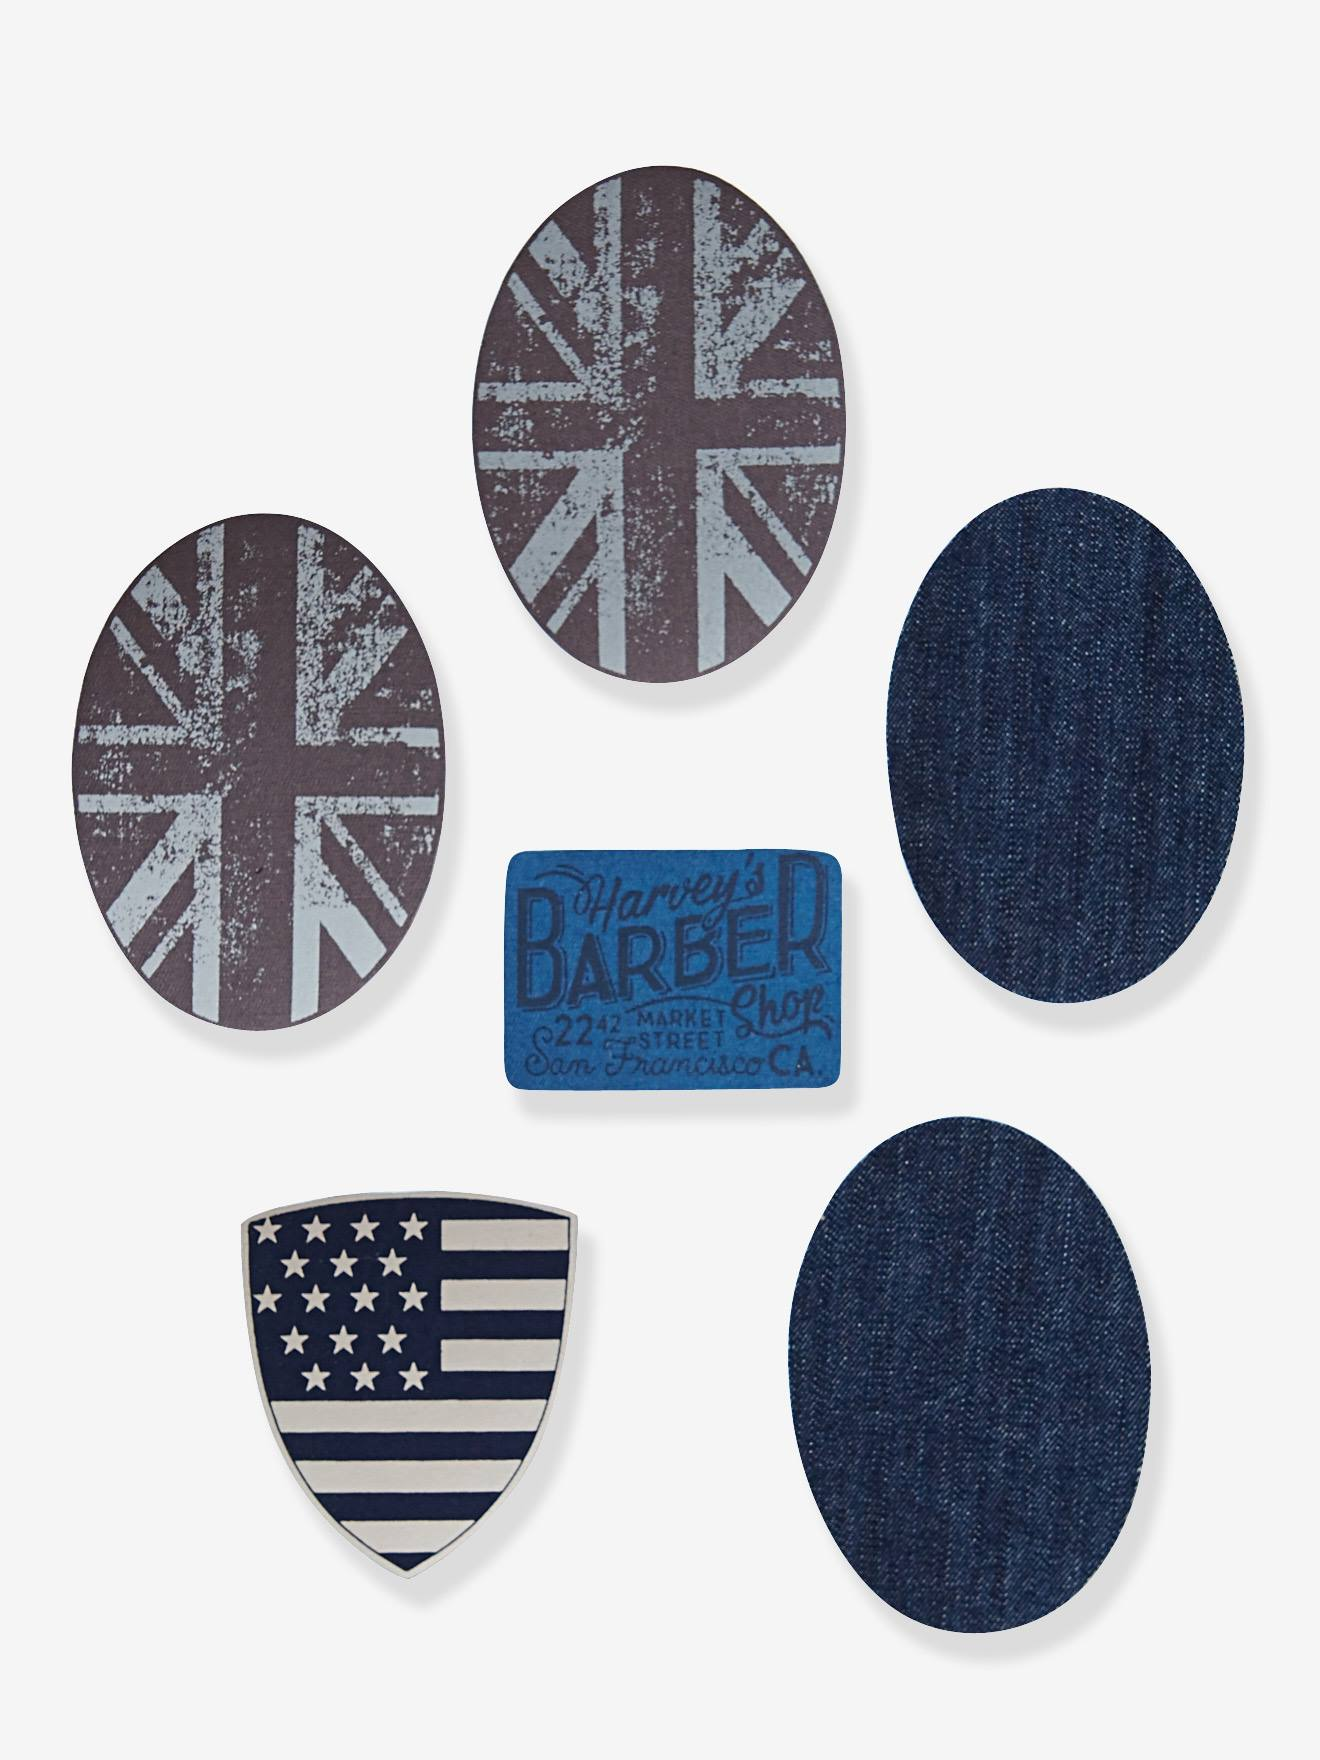 photograph about Printable Iron on Patches referred to as Pack of 6 Boys Iron-upon Patches - blue darkish all around released, Boys